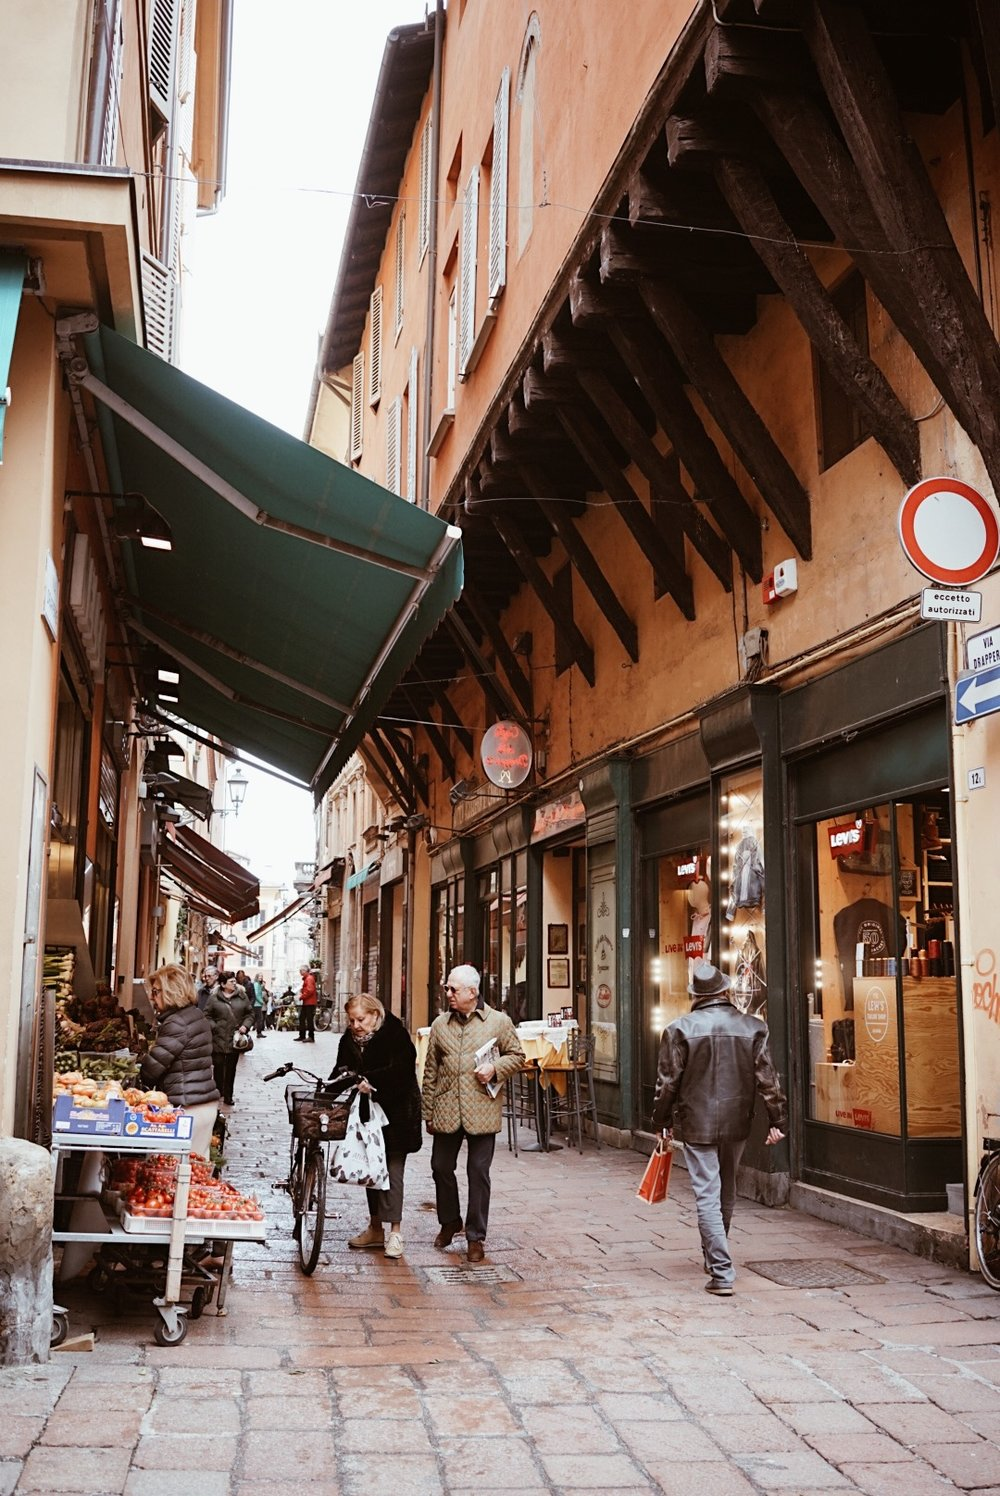 streets of Bologna, Italy